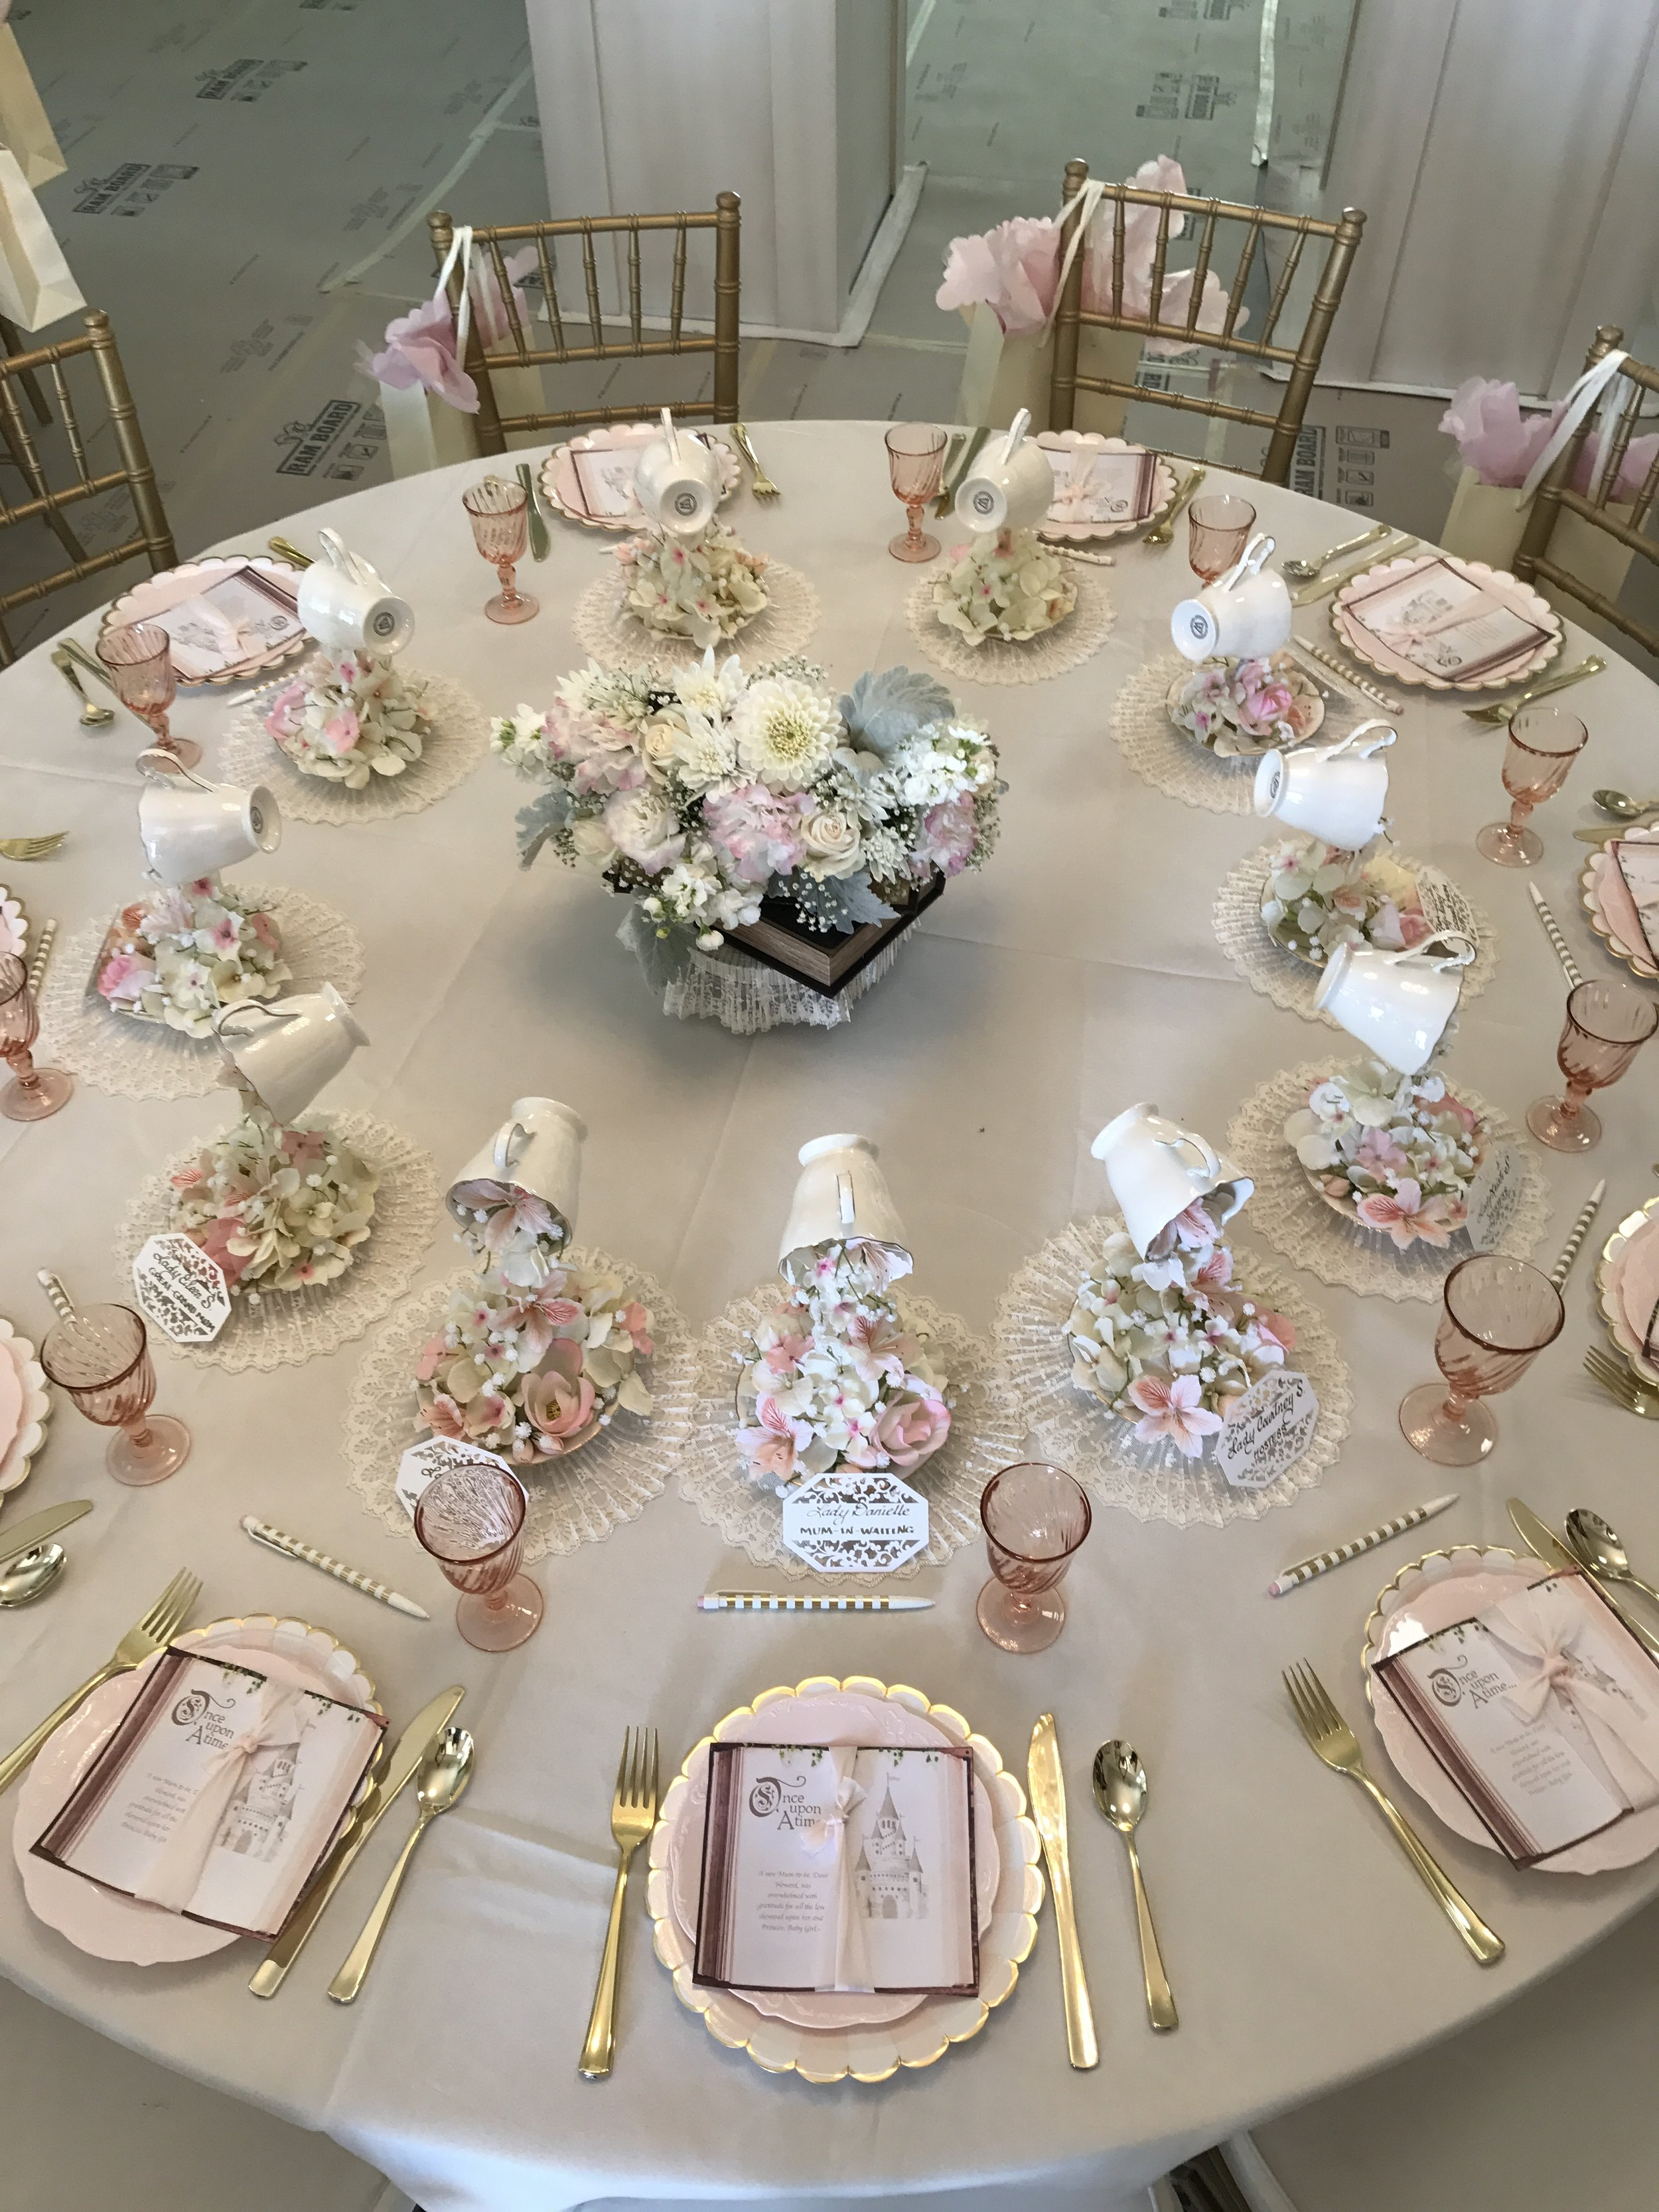 I mean come on that table setting is a rose-gold dream come true.